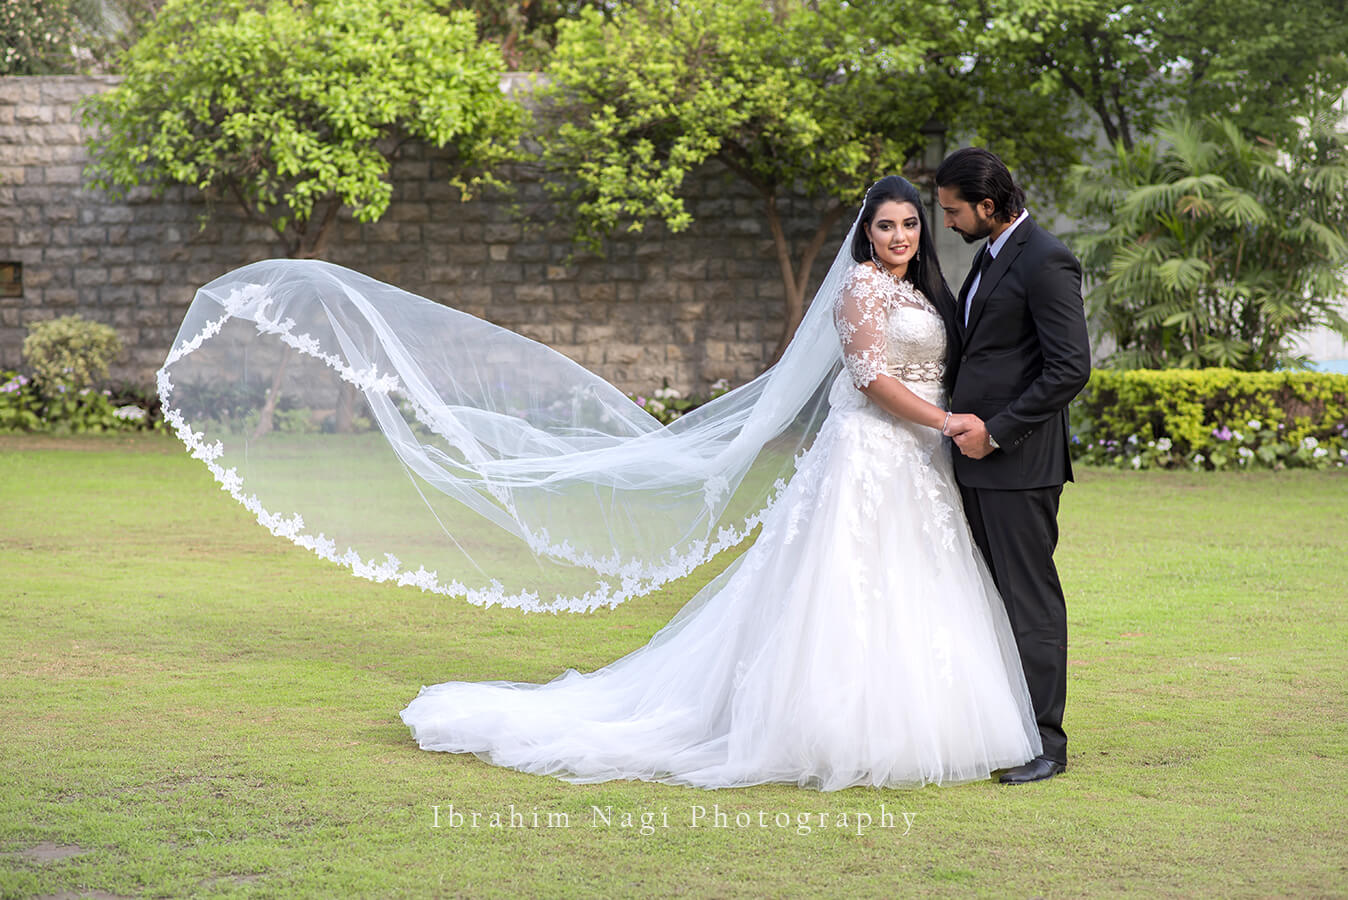 Best Wedding Couple Photoshoot Dubai-9